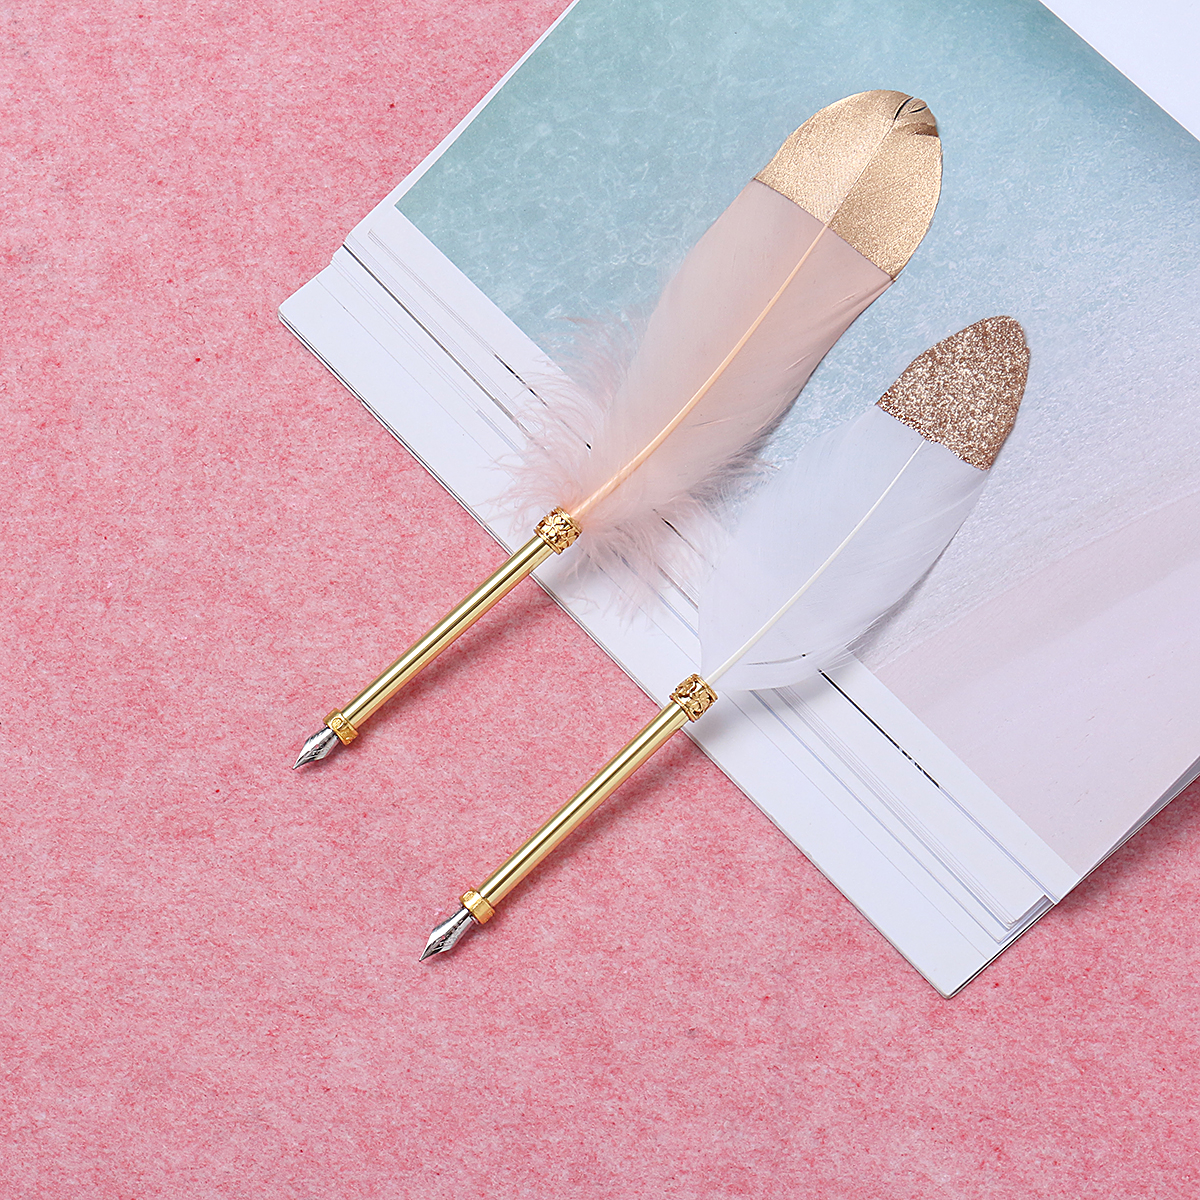 European Retro Feather Fountain Pen Copper Pen Holder Office Bussiness Signing Pen with Gift Box